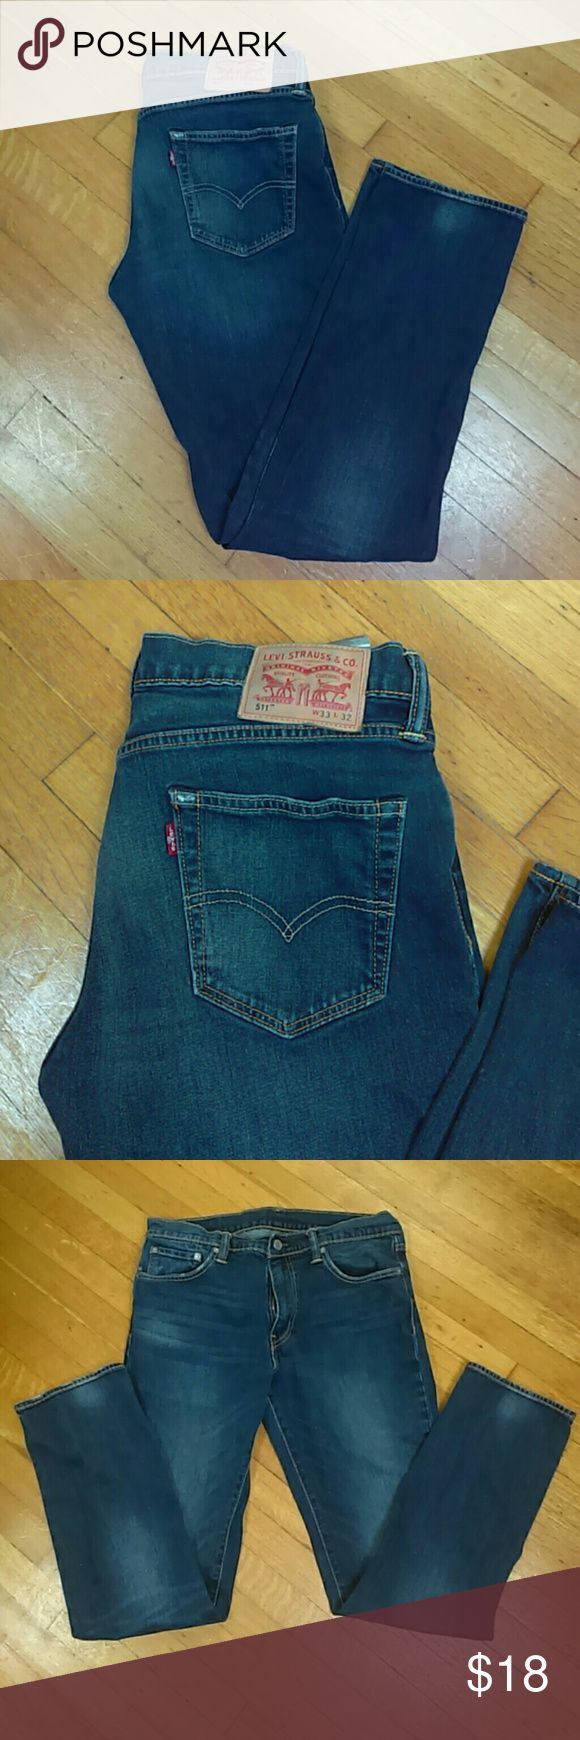 🎇SALE 🎆 Men's Levi's 511 Blue Jeans These are great jeans in really good condition. There's a tiny bit of the start of fraying that can be seen in the photos. W33 L32 Levi's Jeans